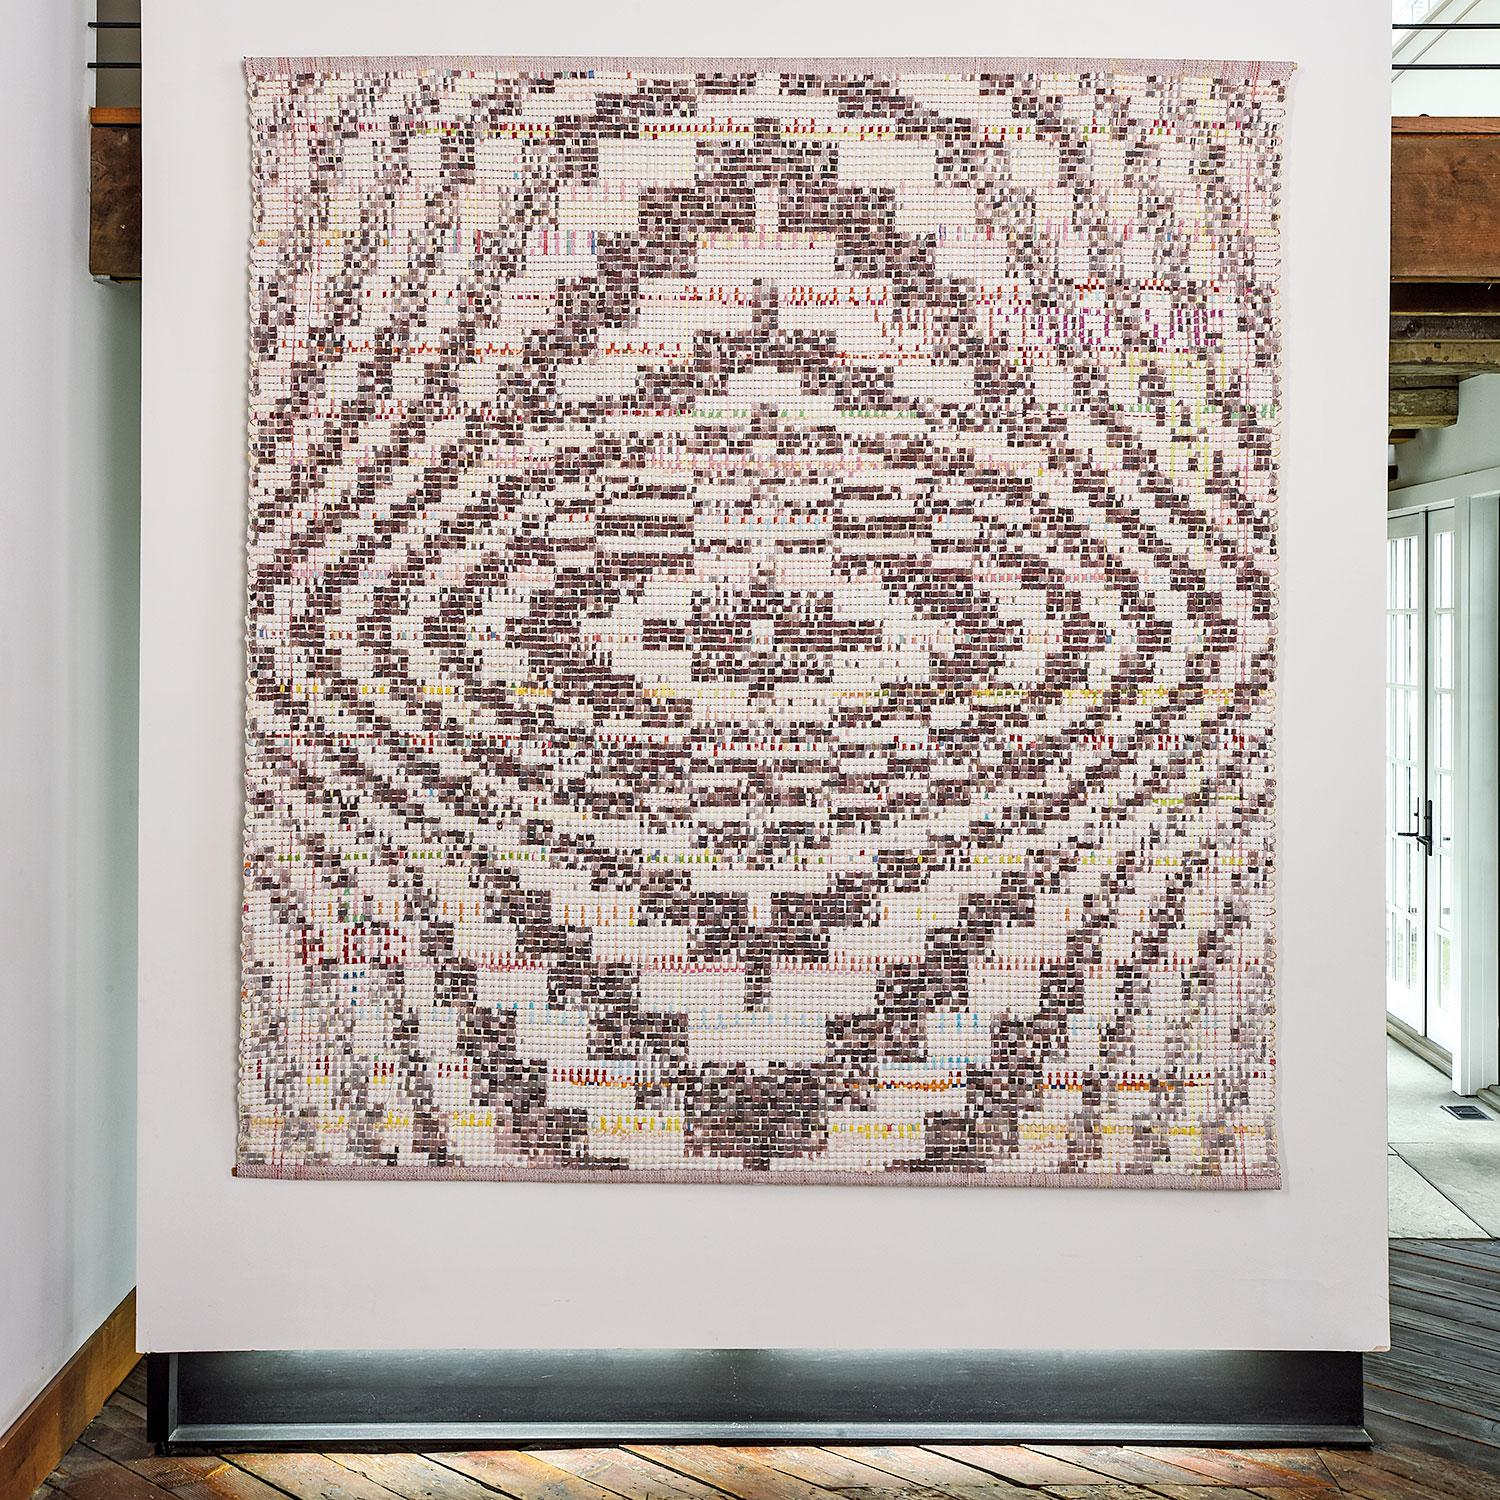 State of Mind, Contemporary Woven Tapestry, Geometric Abstract Textile Sculpture